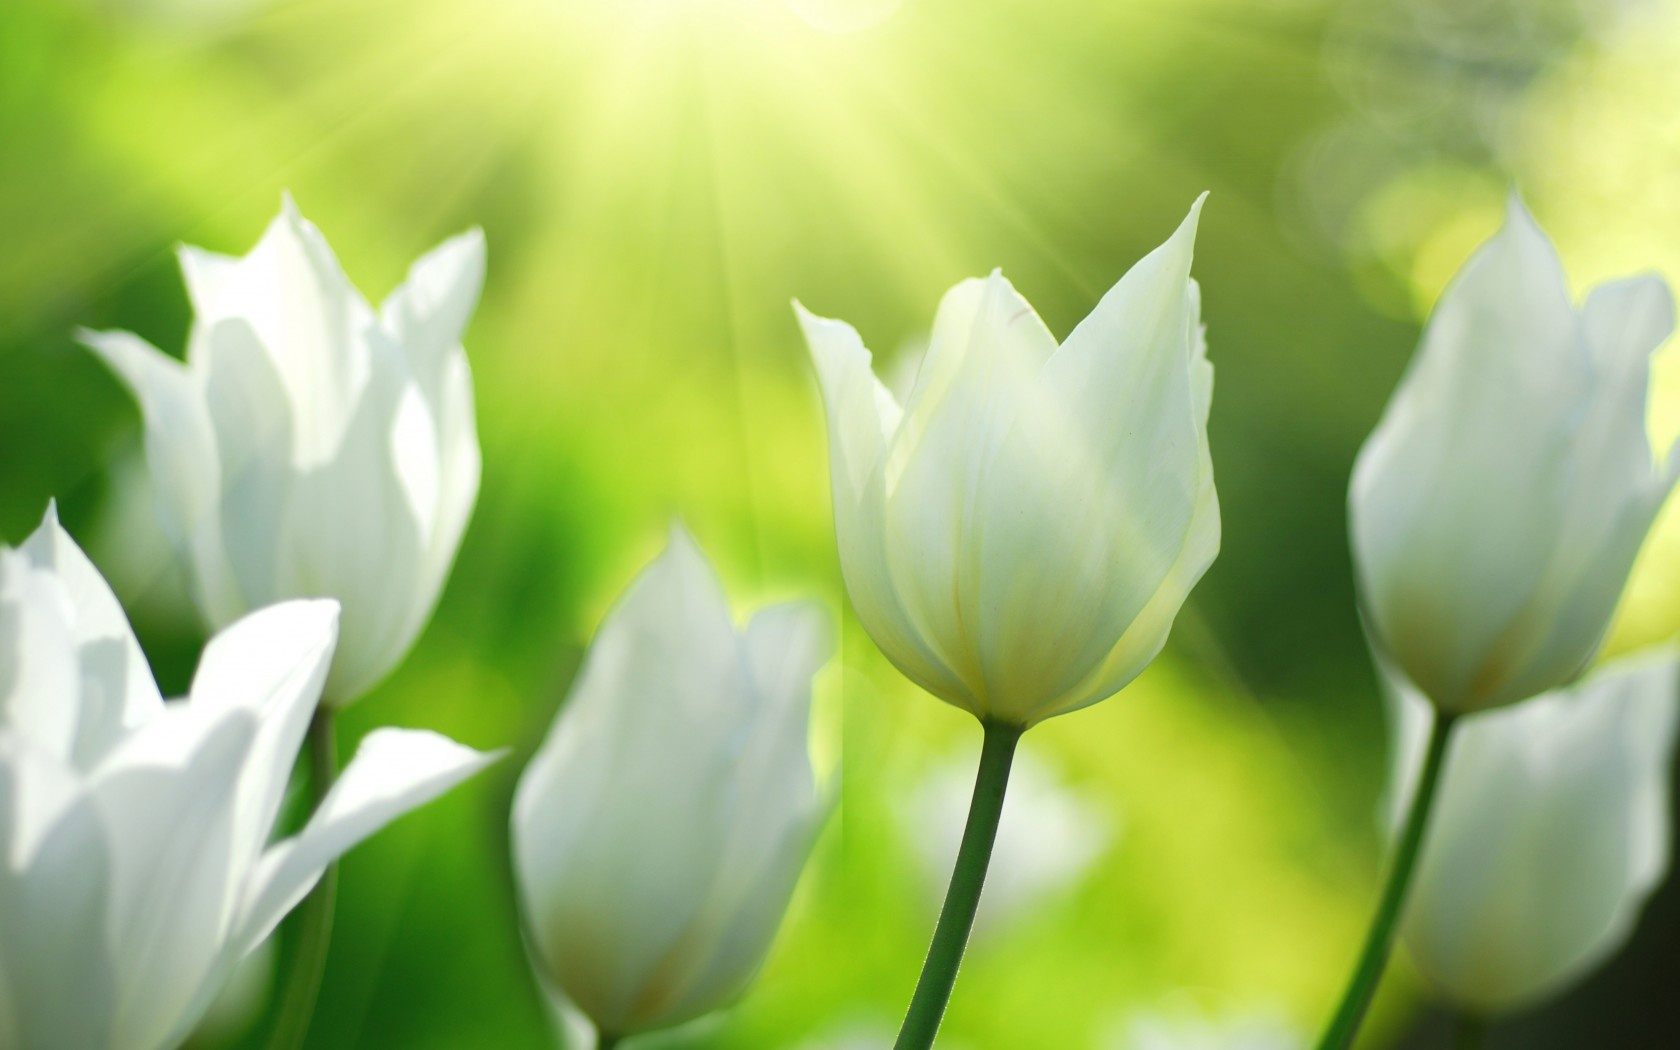 Spring white tulips flowers 1680 x 1050 download close